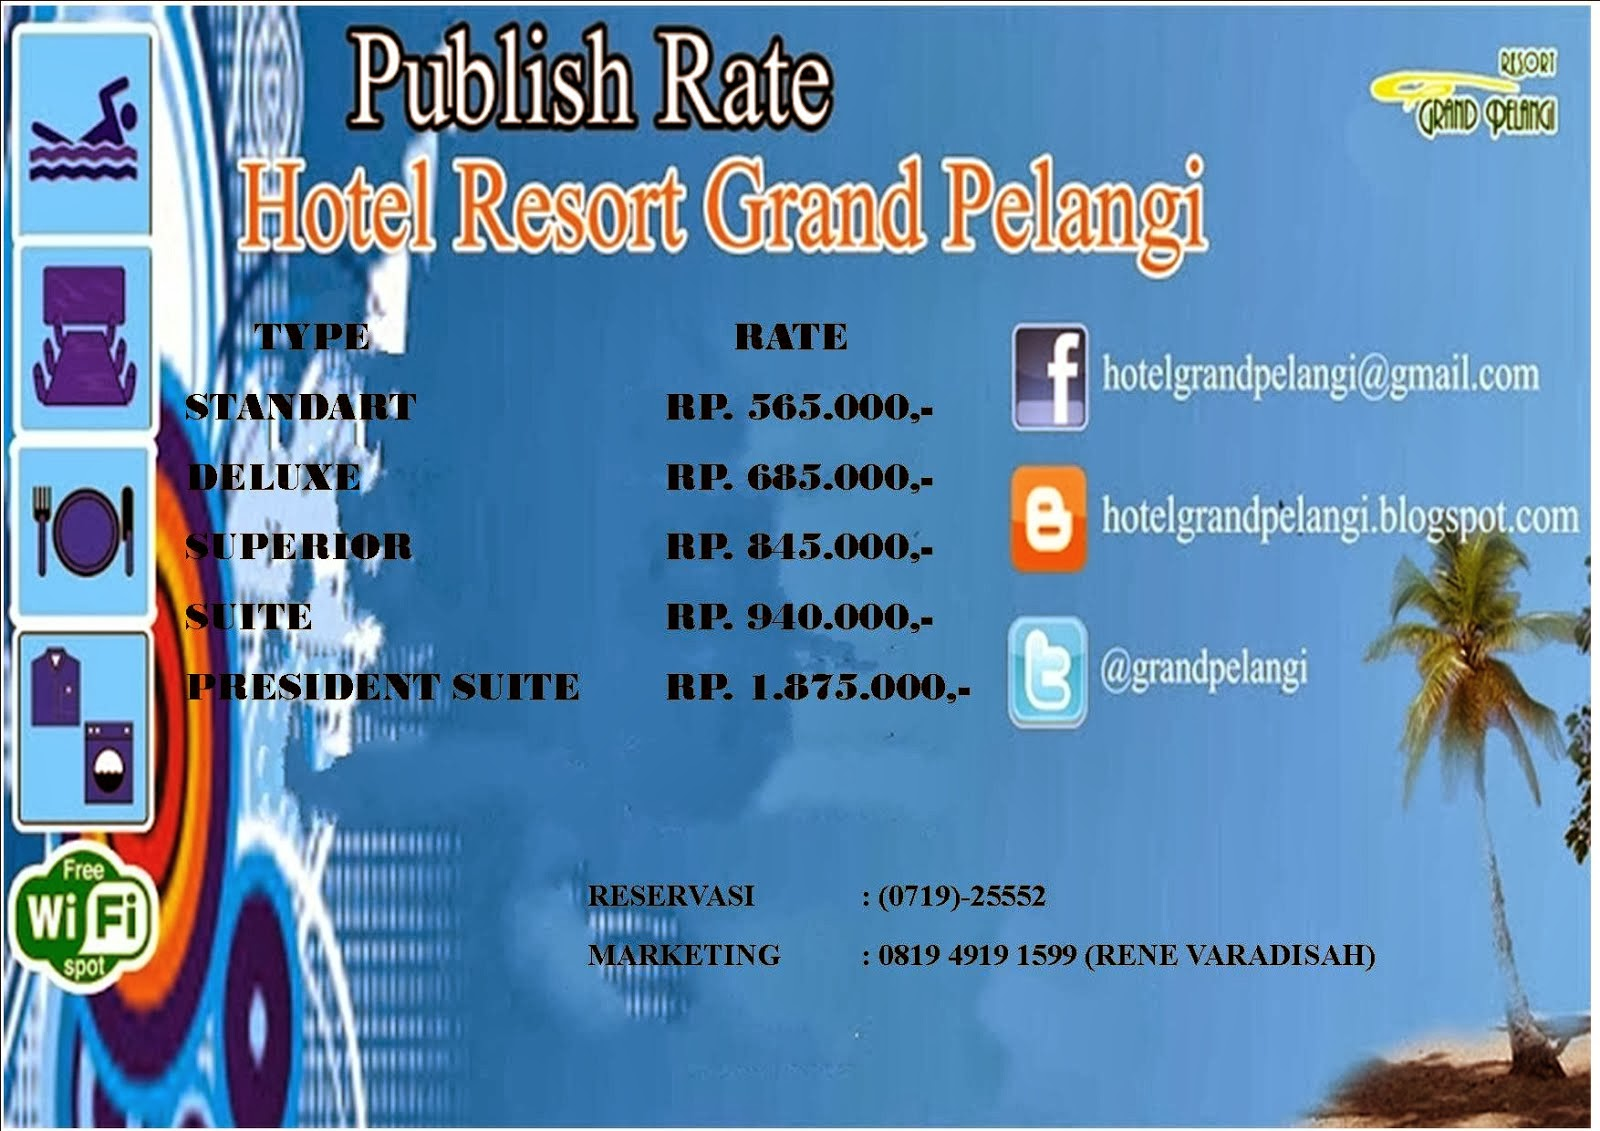 Publish Rate